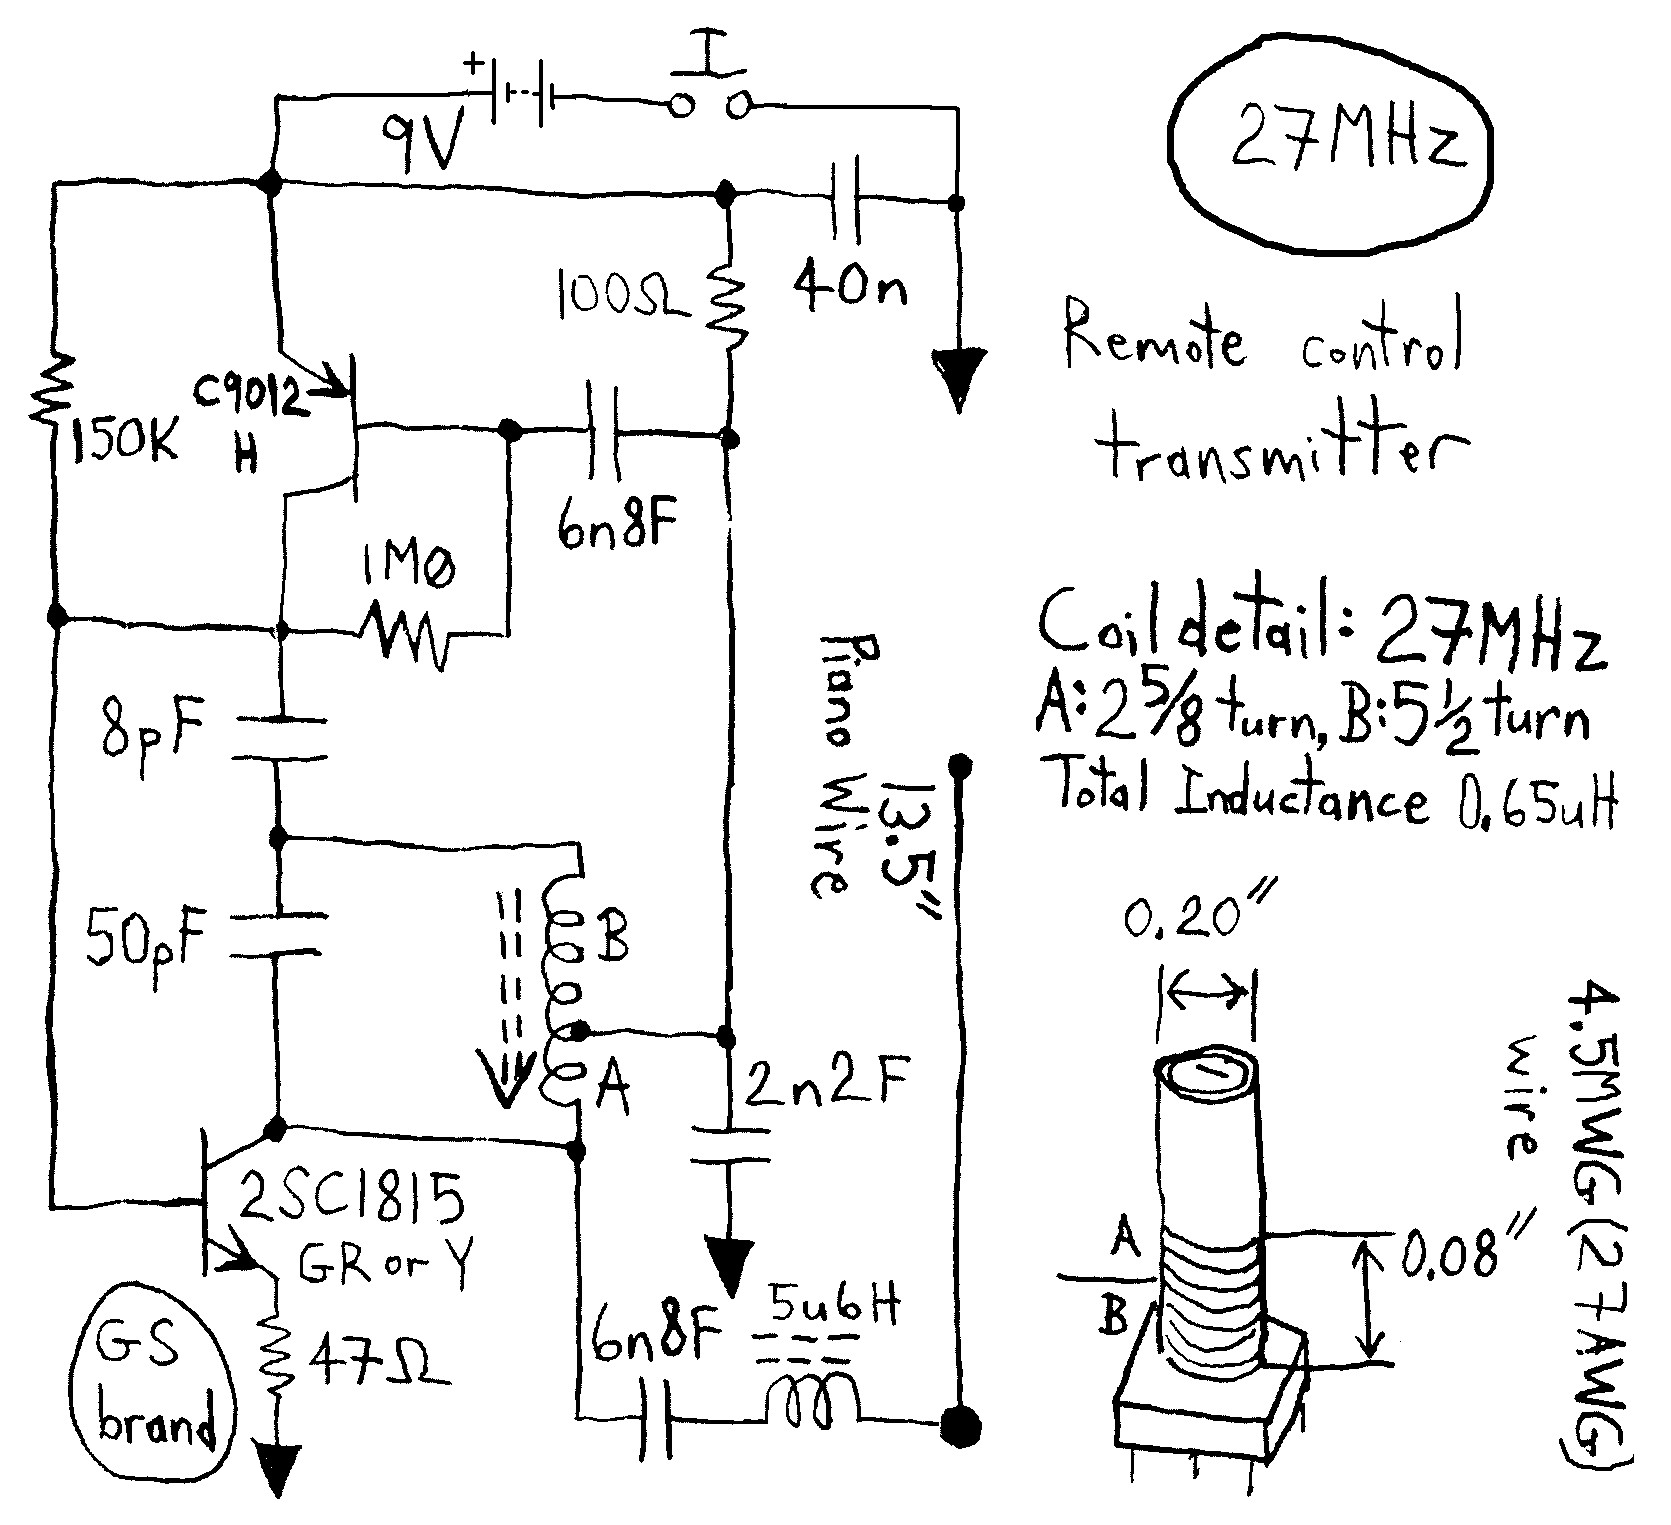 Remote Control Cars Circuit Diagrams Awesome Wiring Diagram Image On Off Switch Schematic Circuits Rc Simple L Next Gr Fet Transistor Amplifier Biased